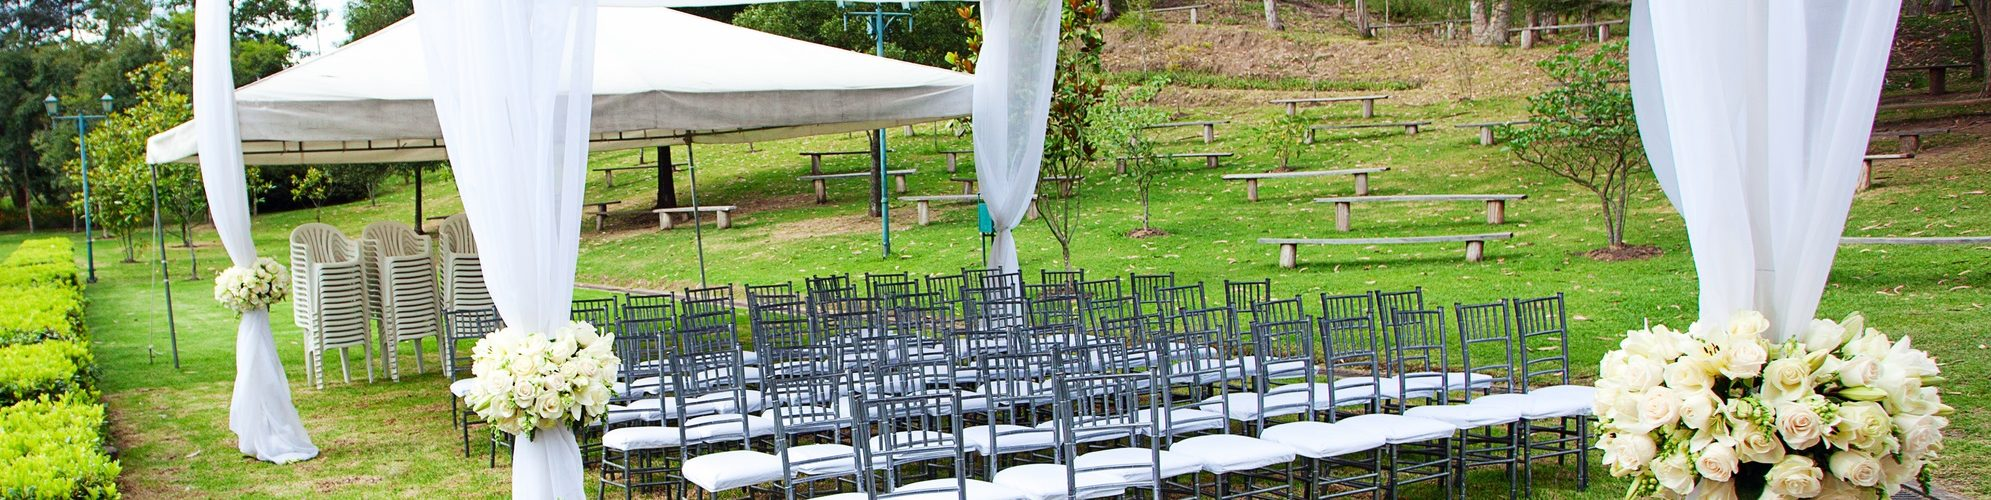 Table And Chair Rentals Singapore Cheap And Affordable Rental For